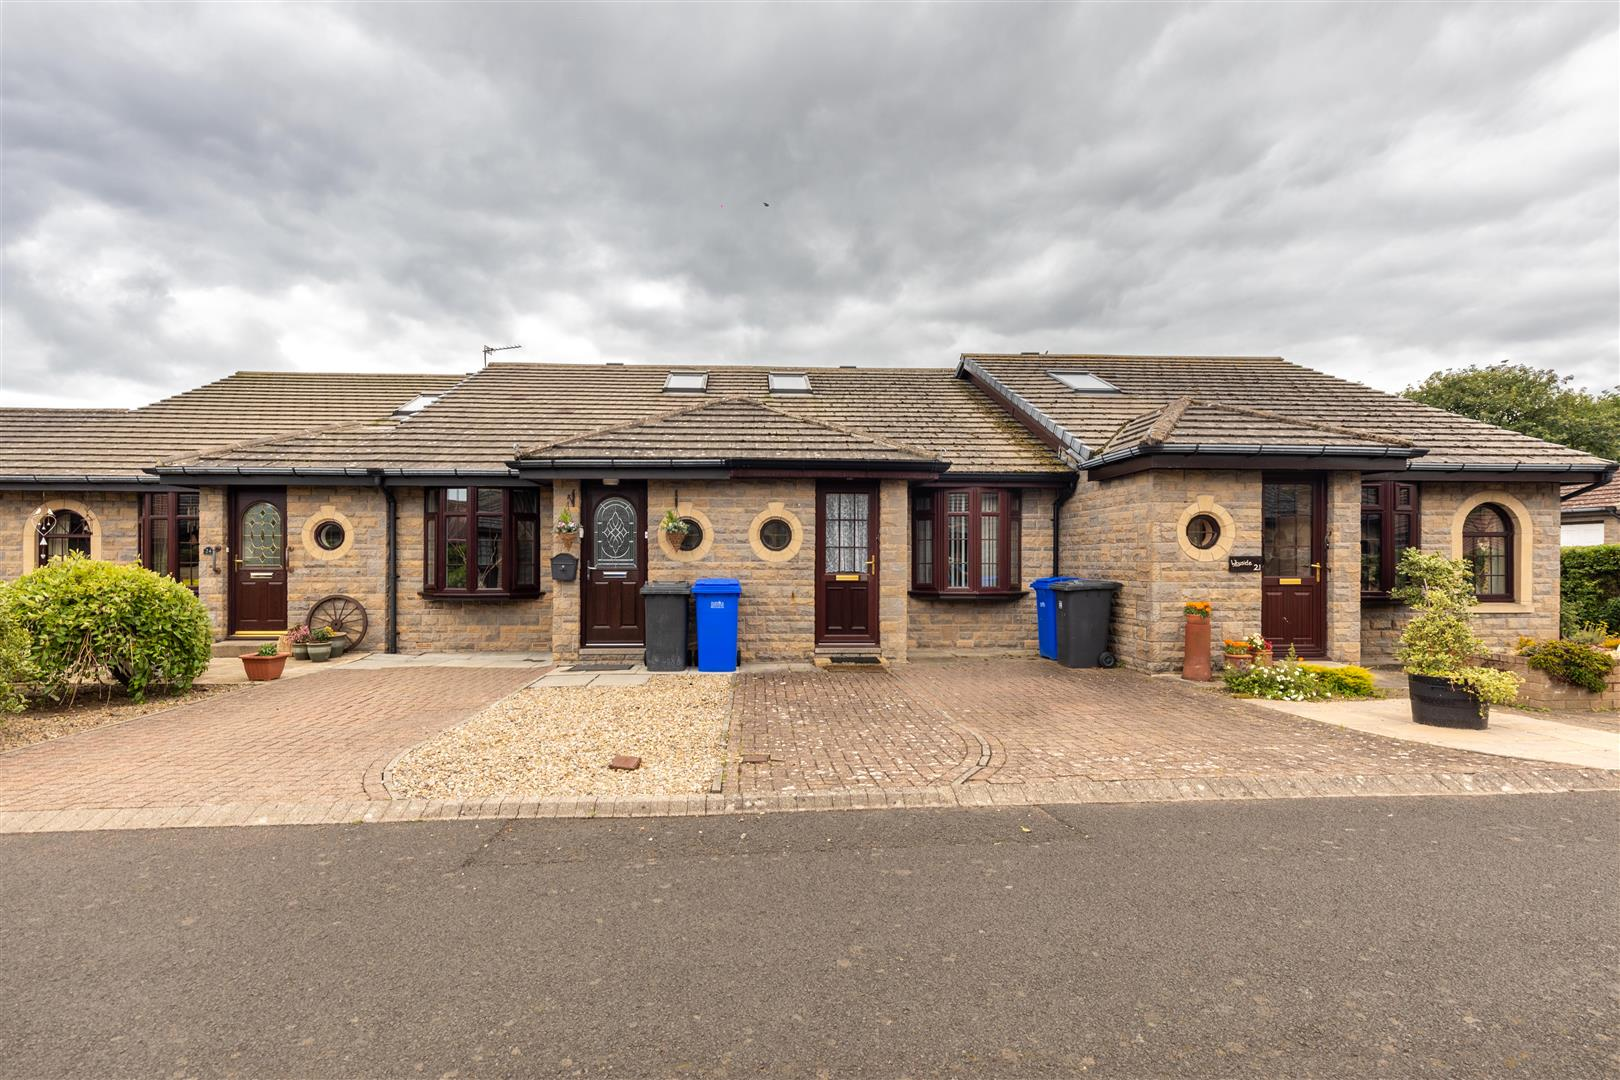 2 bed terraced bungalow for sale in Seahouses, NE68 7YU, NE68